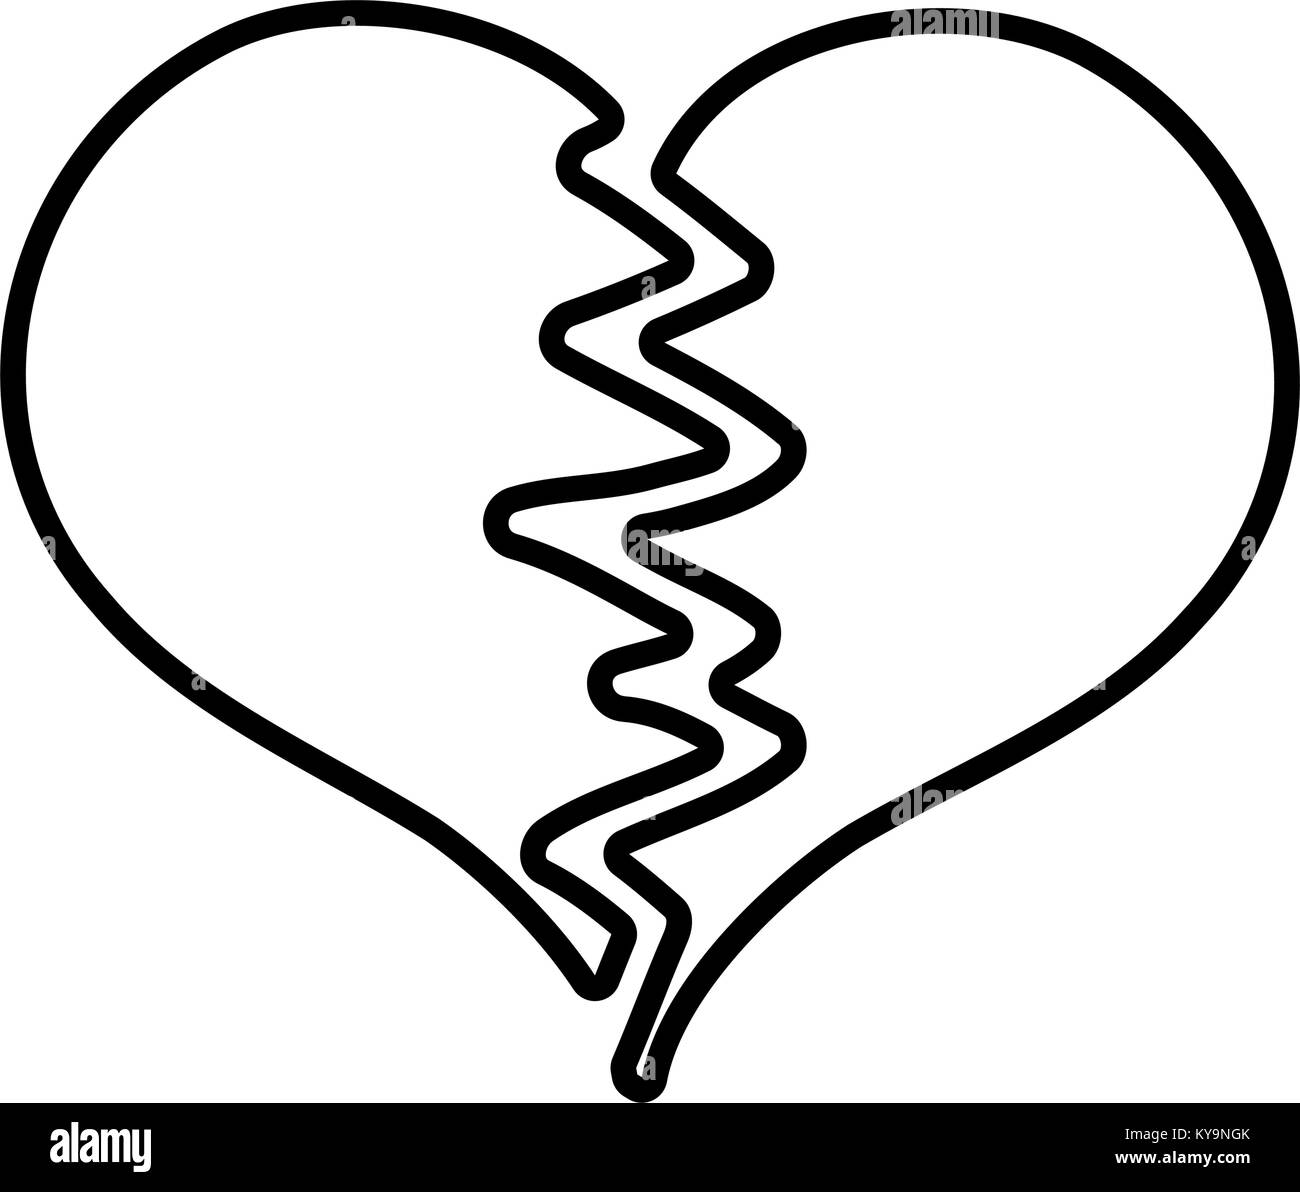 Broken Heart Symbol Black And White Stock Photos Images Alamy